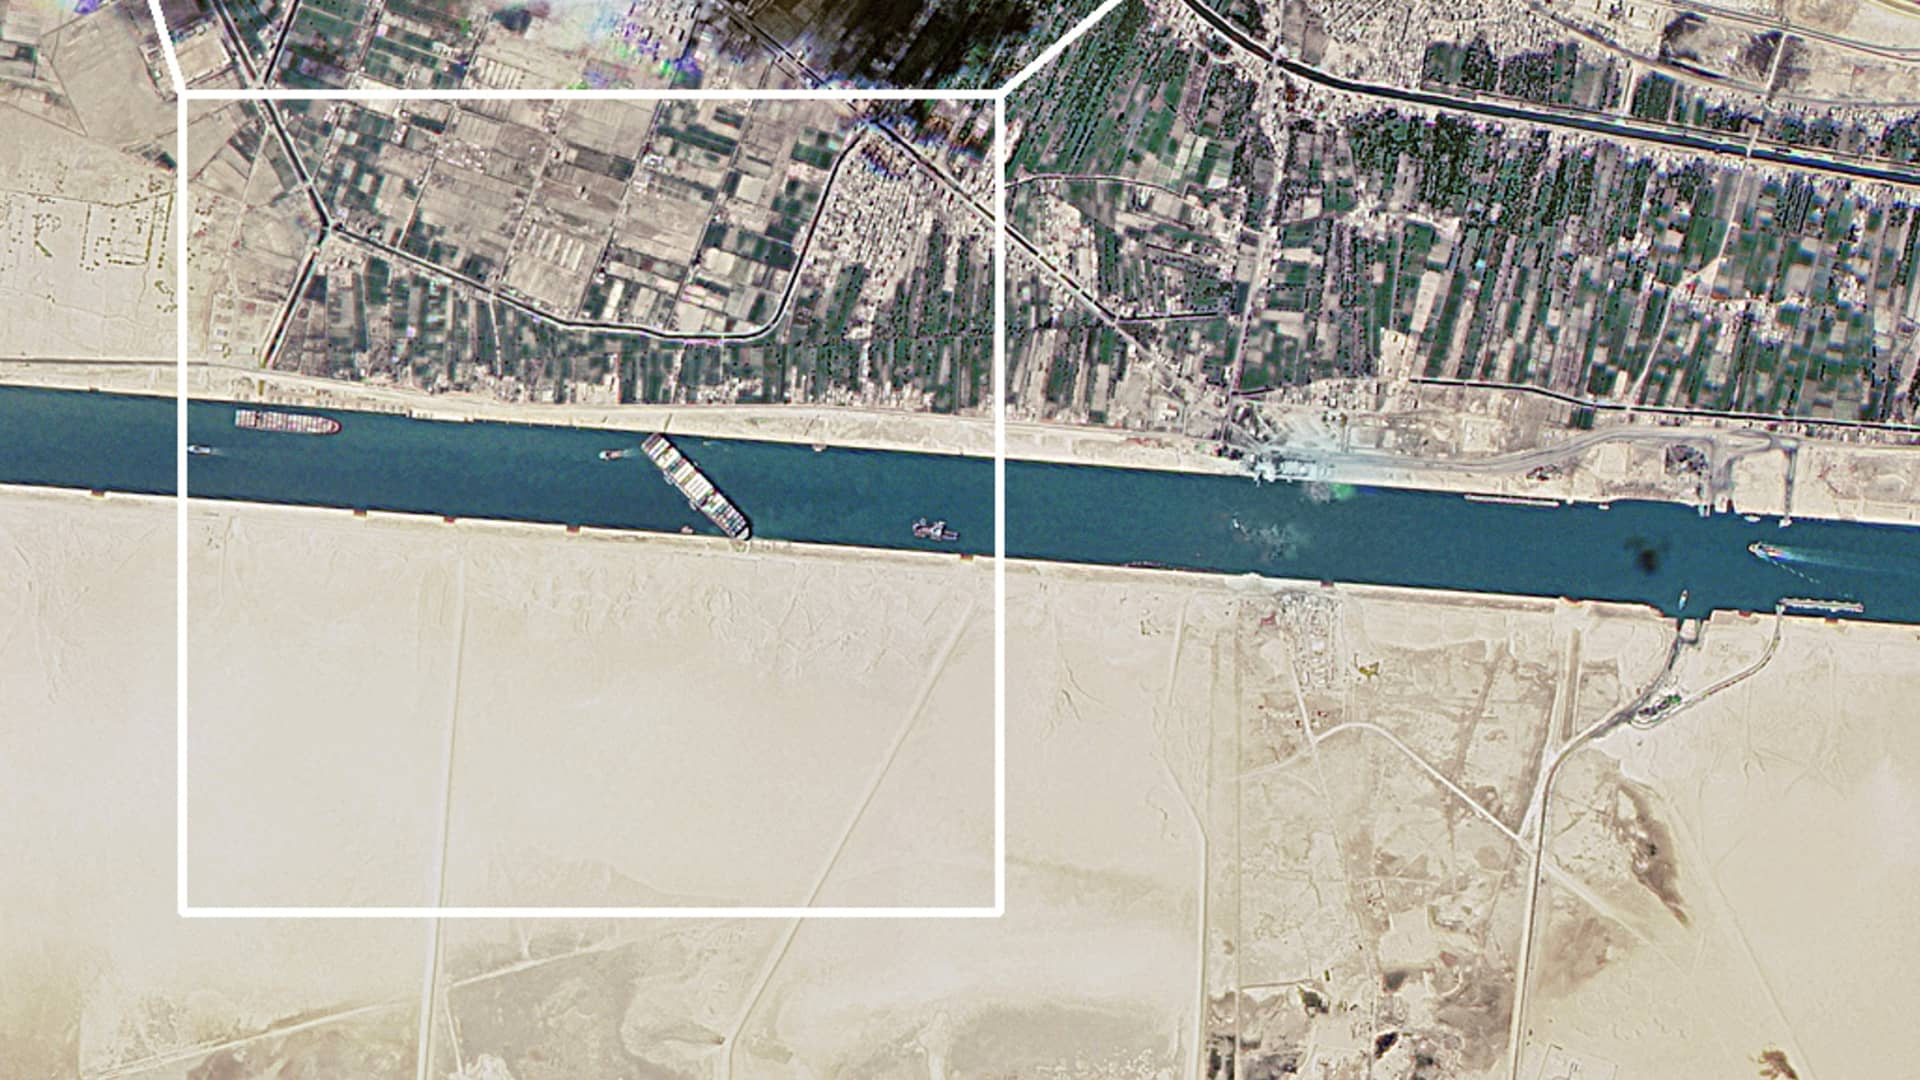 A satellite image shows the Suez Canal blocked by the stranded container ship Ever Given in Egypt March 25, 2021, in this image obtained from Twitter page of Director General of Roscosmos Dmitry Rogozin. Picture taken March 25, 2021.